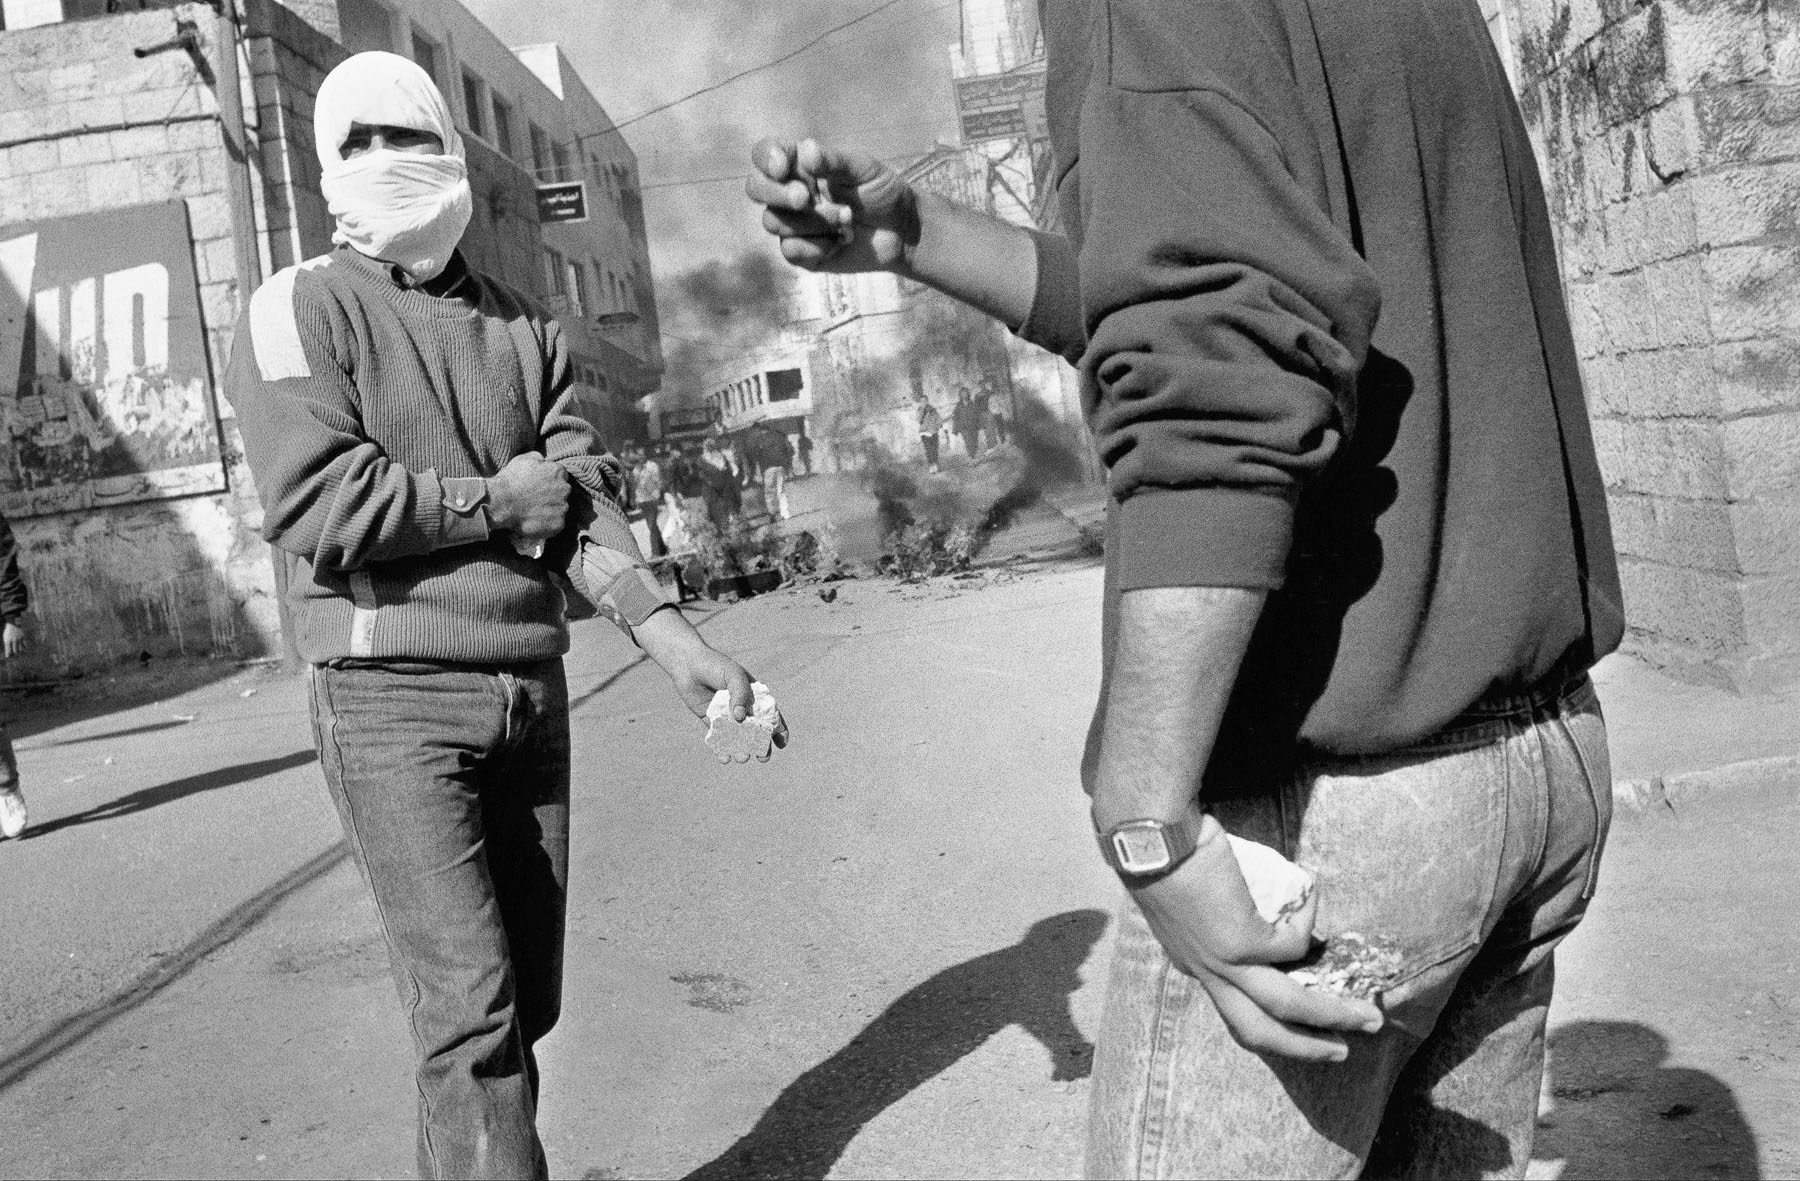 Young Palestinians throwing stones during a demonstration in December 1988